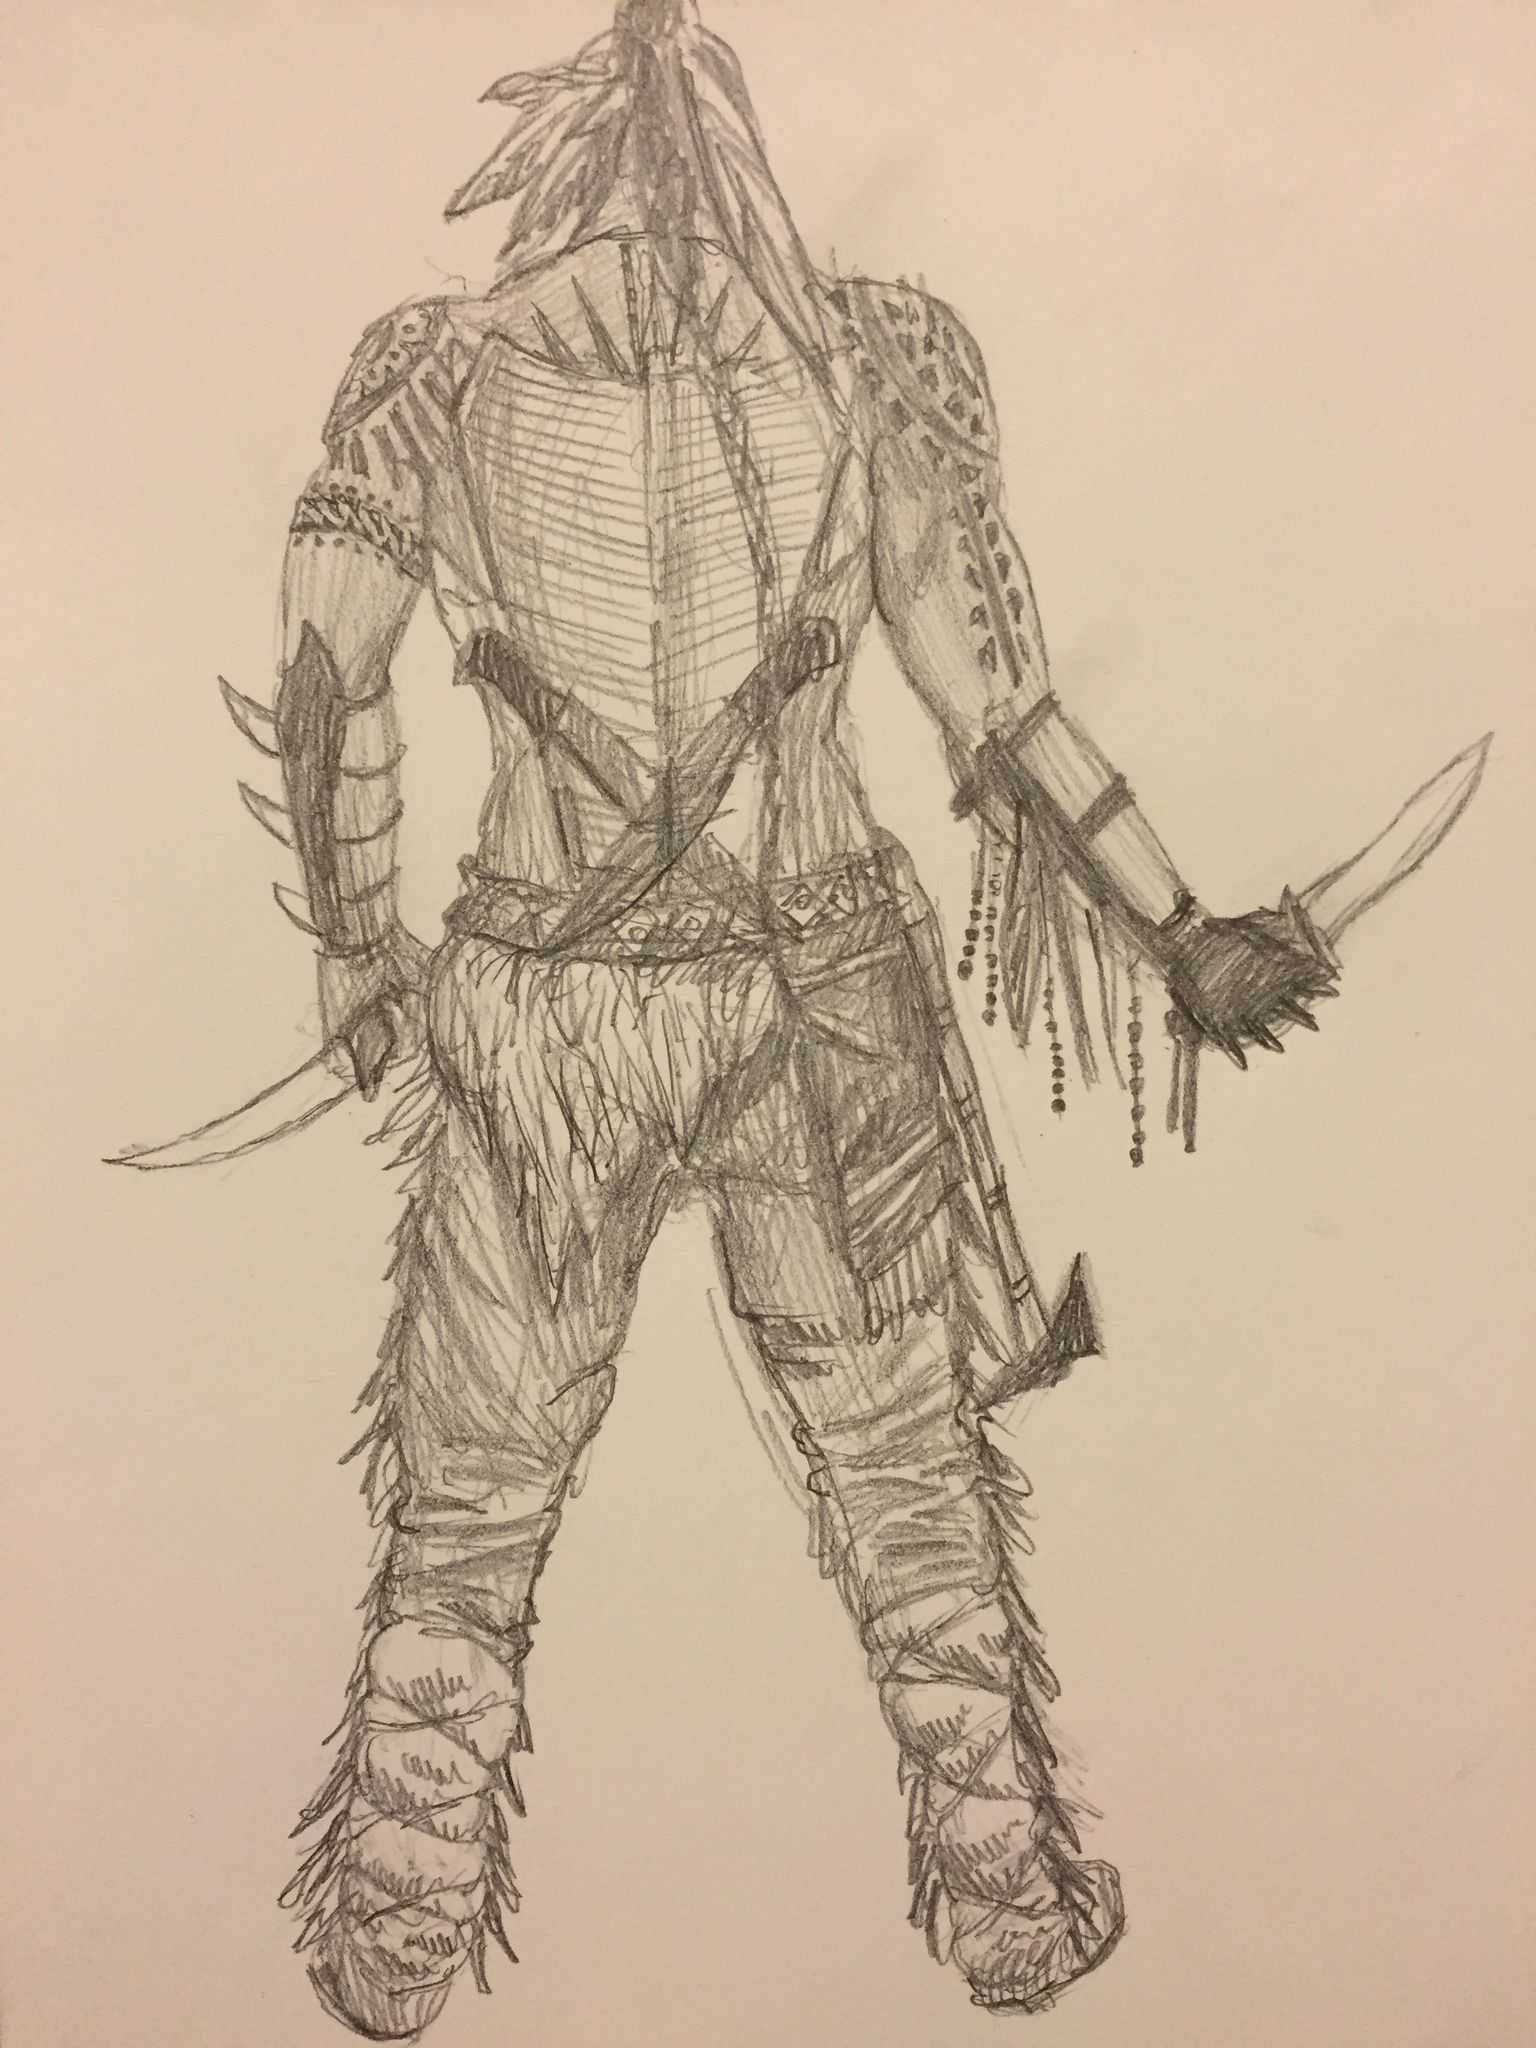 Turok Son Of Stone Character Design Costume Sketch By Yasha Puzankov Character Design Sketches Sketch Show